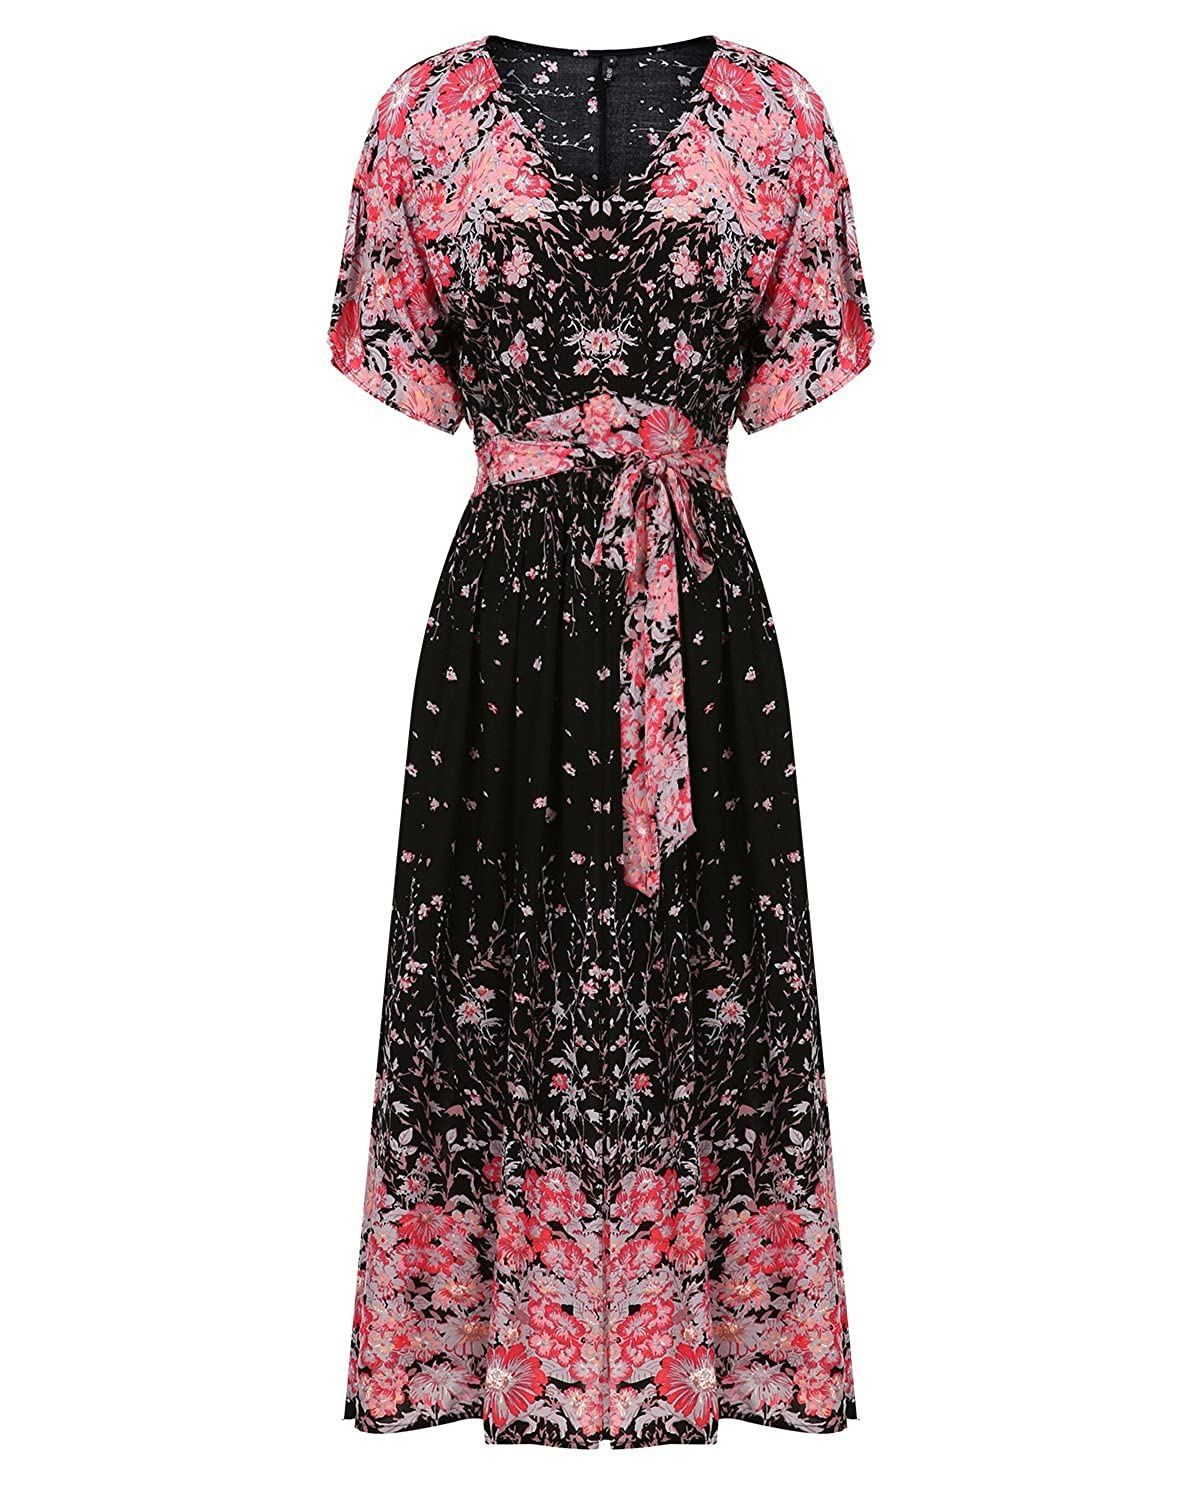 c43a482dae Material: 100% Rayon, Super soft and comfortable to wear. Design: Flower  printed maxi dress,sexy deep V neck, Split with belt,self-tie on waist can  fully ...